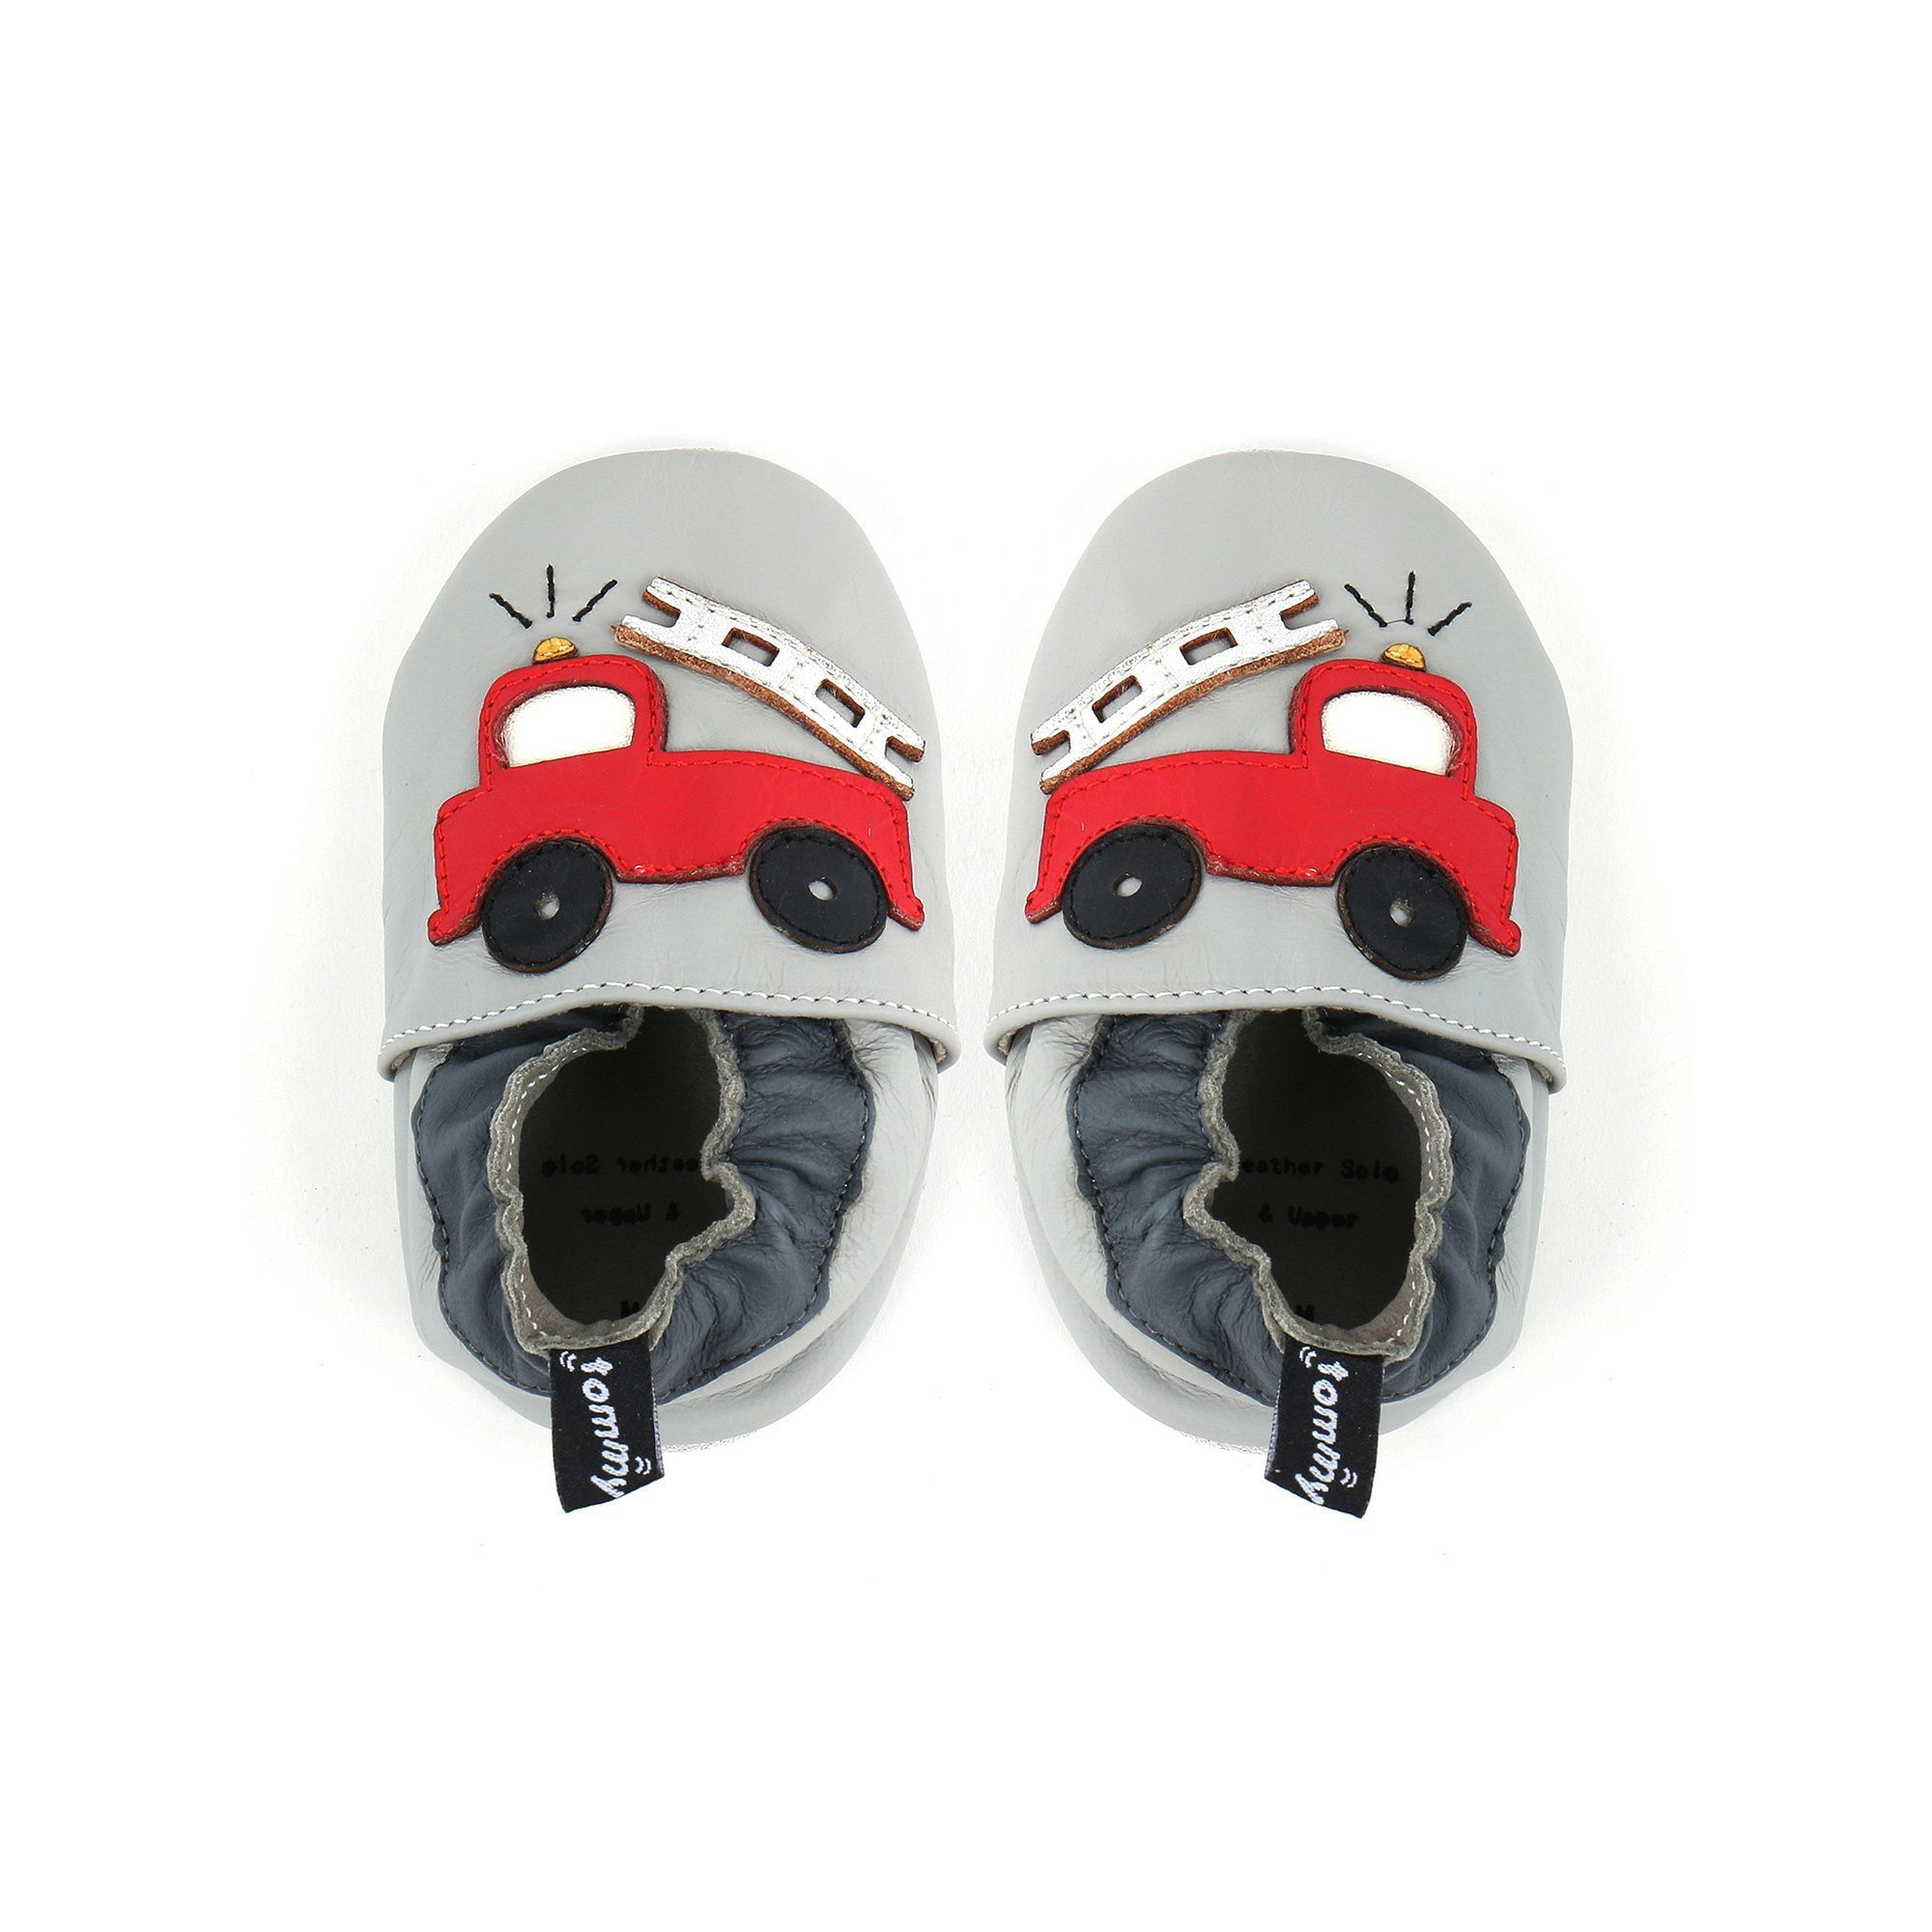 Tommy Tickle Baby Boy Fire Truck Crib Shoes Size 0 6 Months Grey